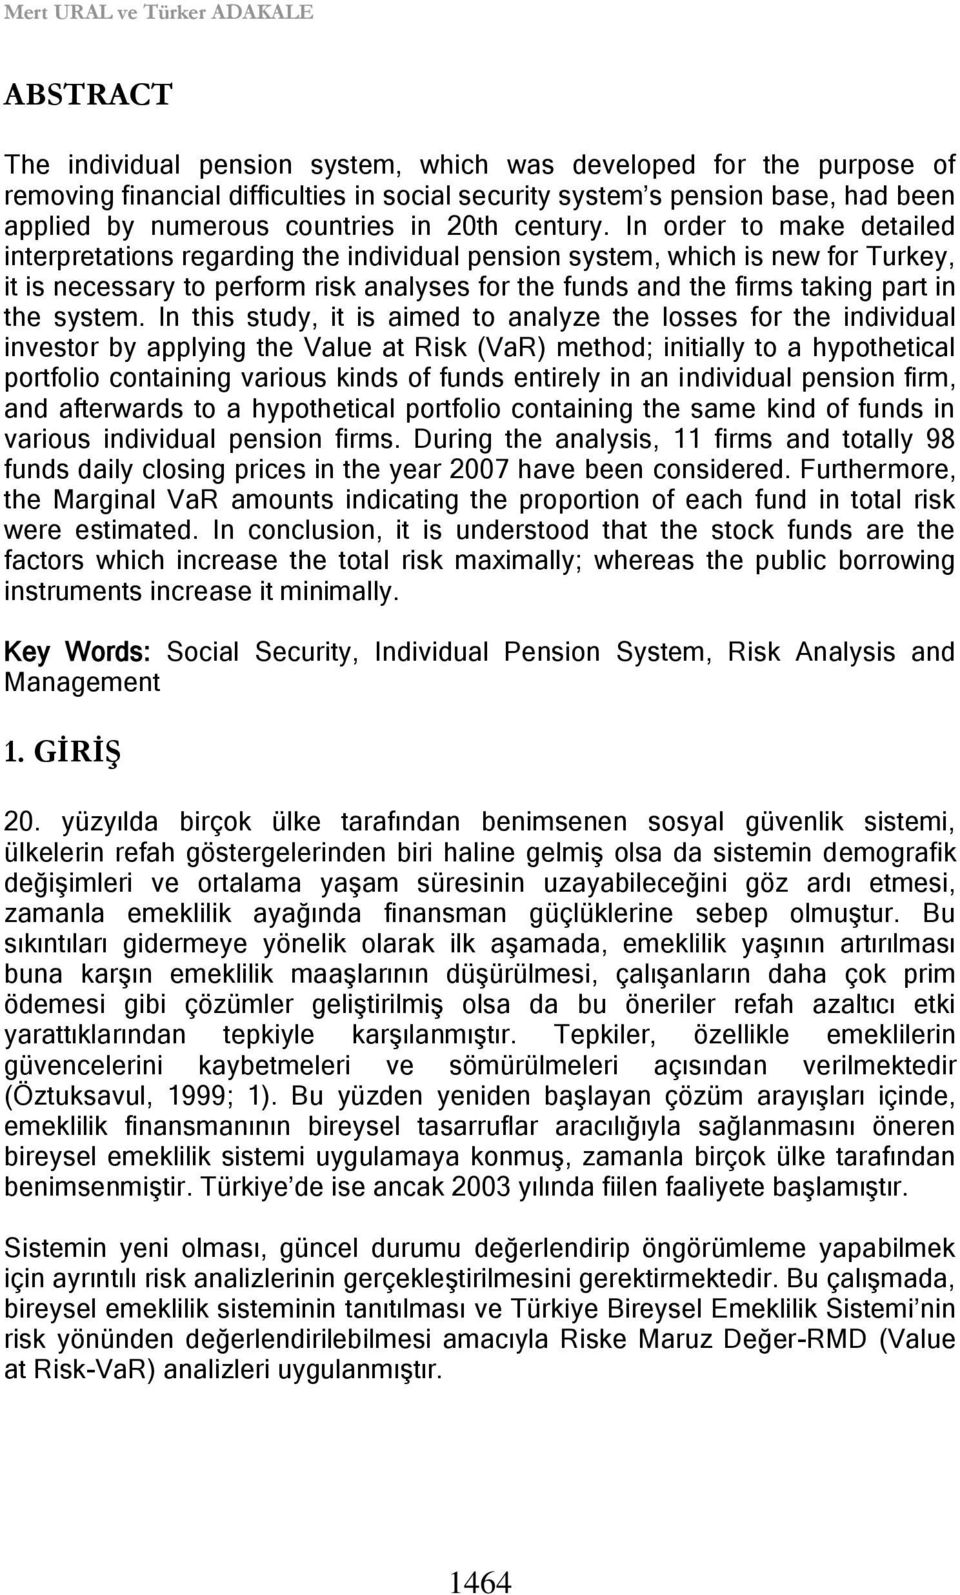 In order to make detailed interpretations regarding the individual pension system, which is new for Turkey, it is necessary to perform risk analyses for the funds and the firms taking part in the